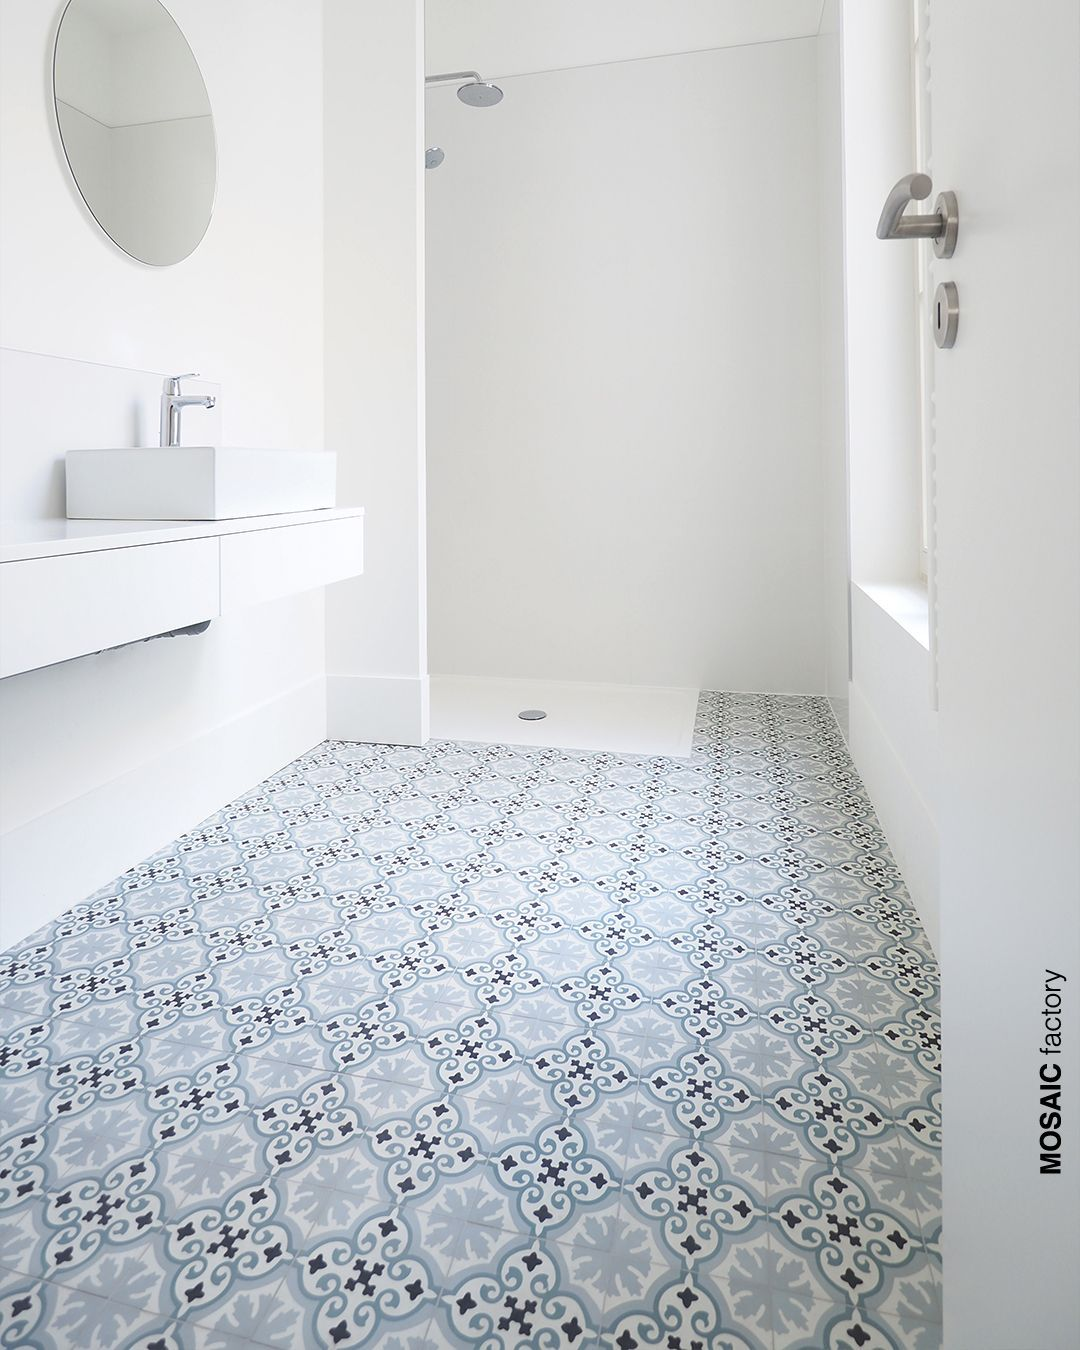 Perfect Blue And White Patterned Bathroom Floor Tiles And Description In 2020 Blue Bathroom Tile Patterned Bathroom Tiles Bathroom Floor Tiles